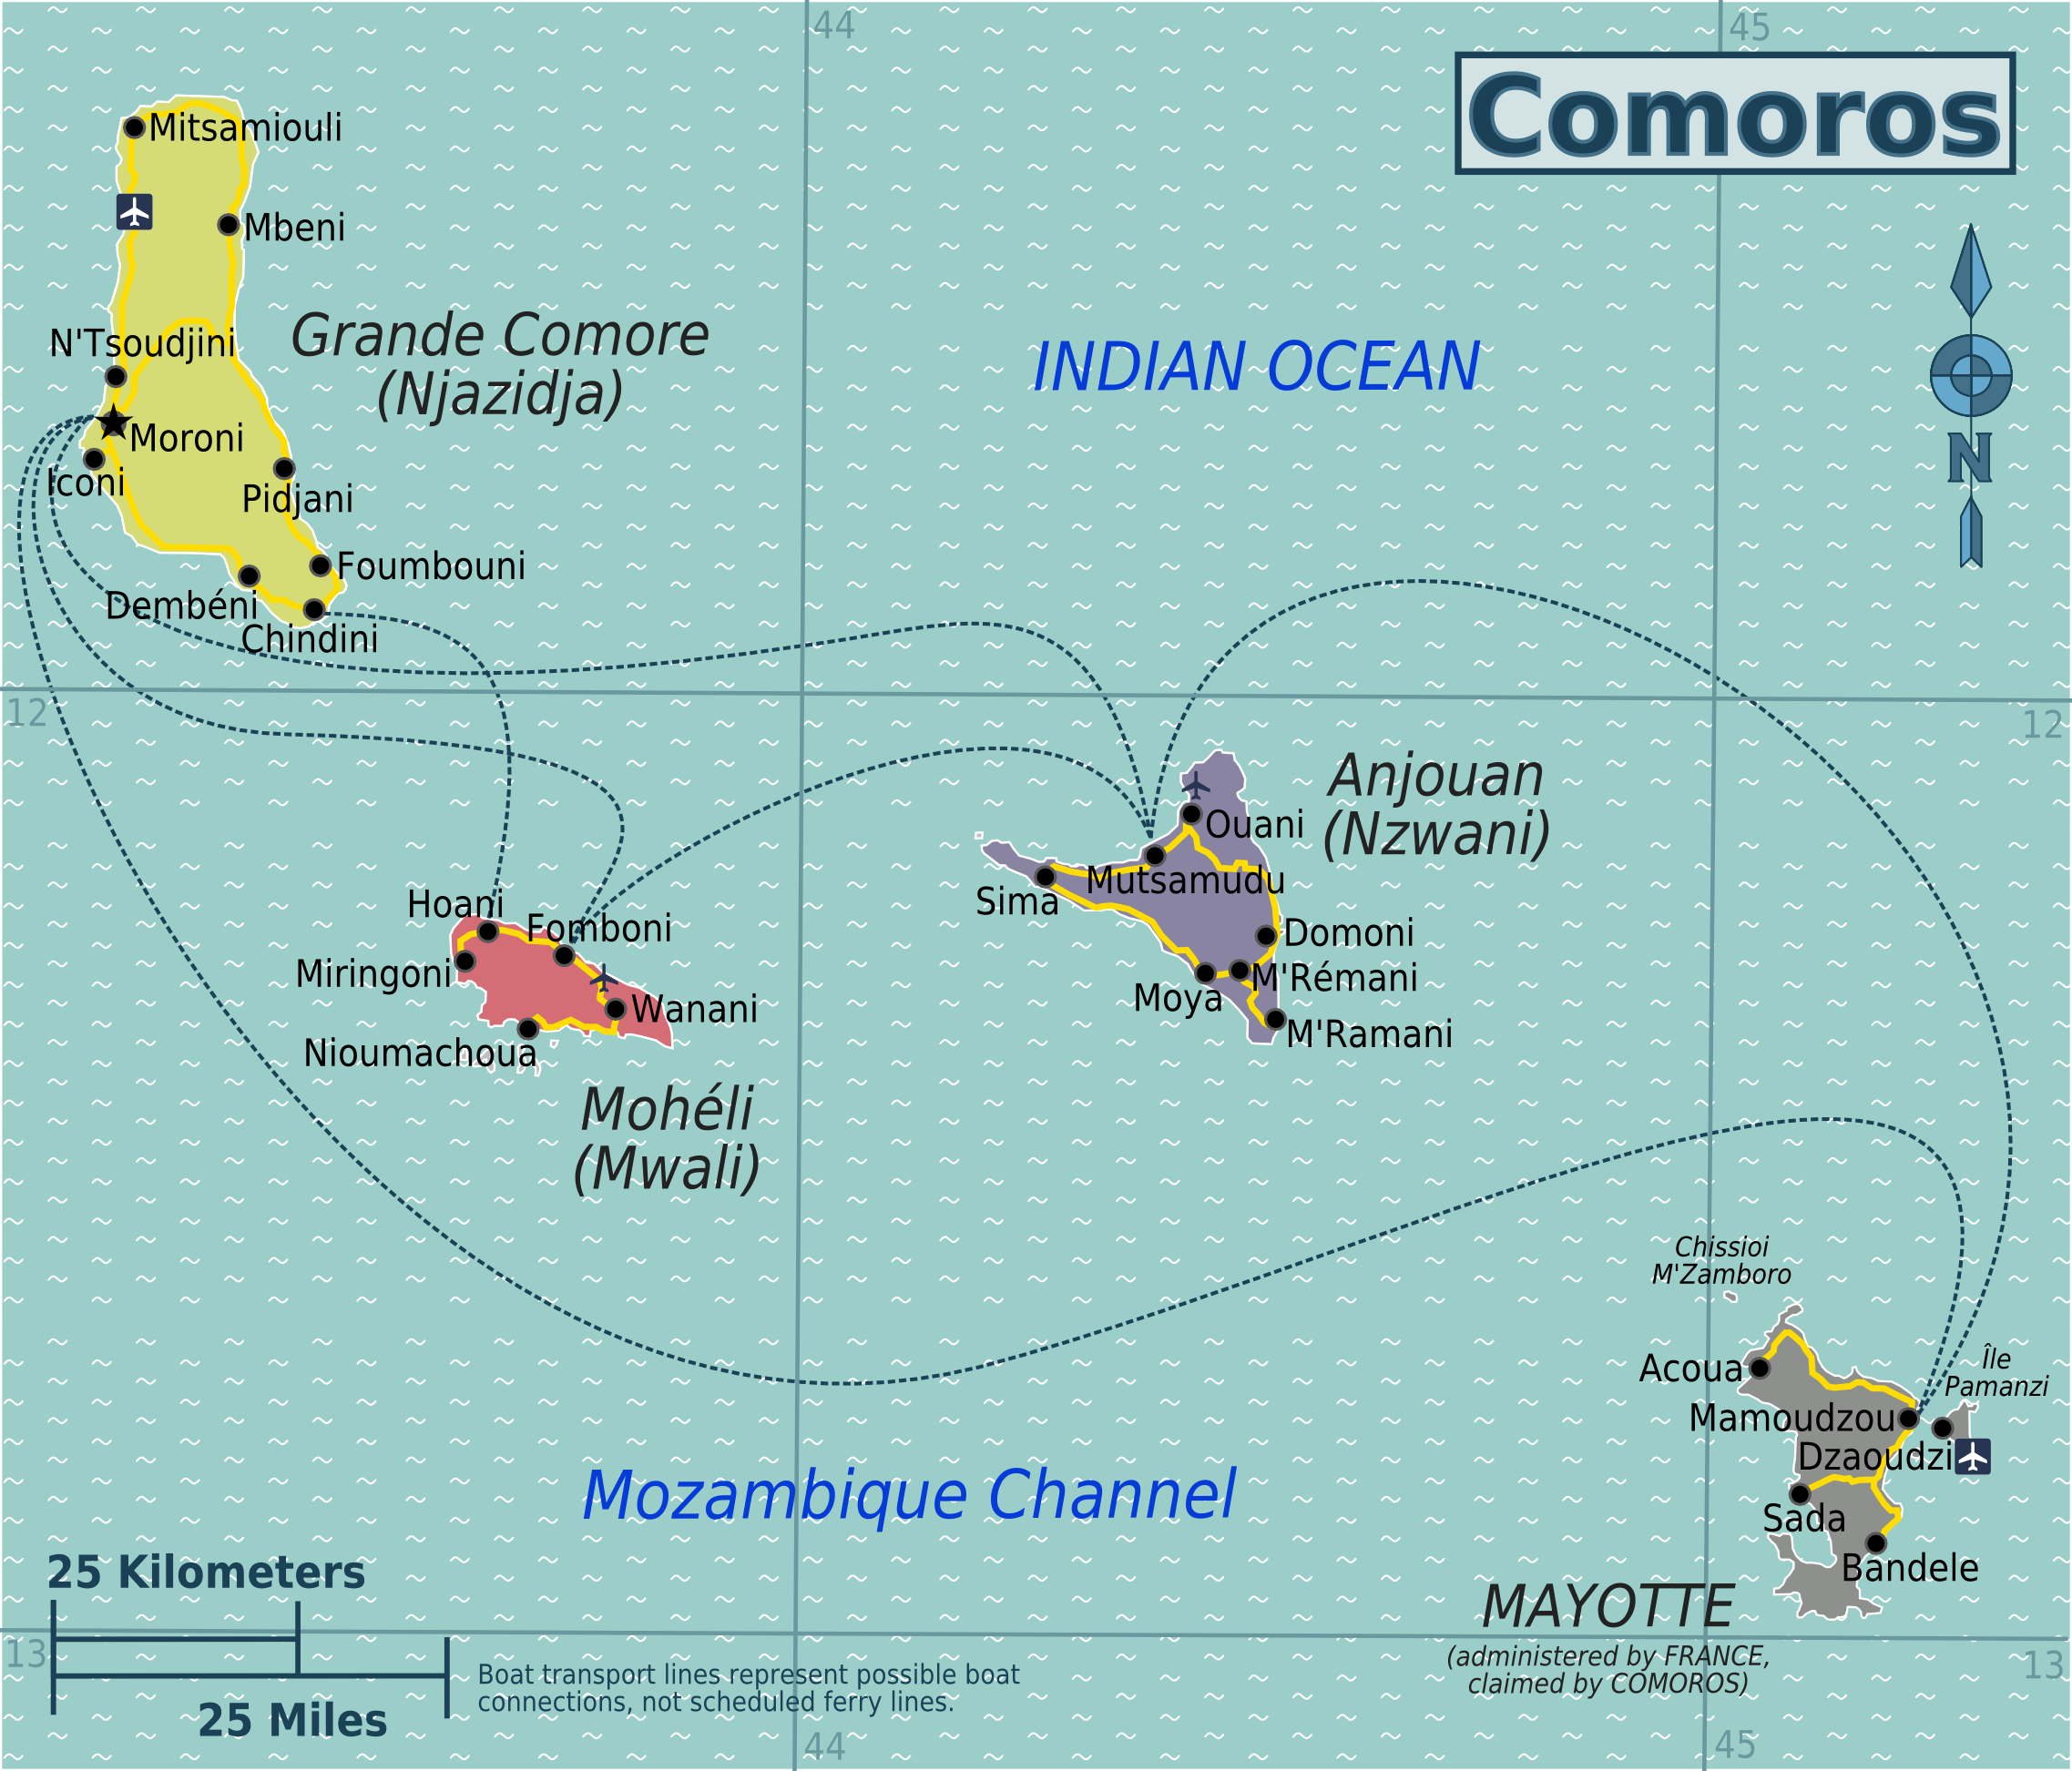 You are currently viewing CMA CMG starting fortnightly service between Longoni (Mayotte), Mutsamudu (Anjouan) and Moroni